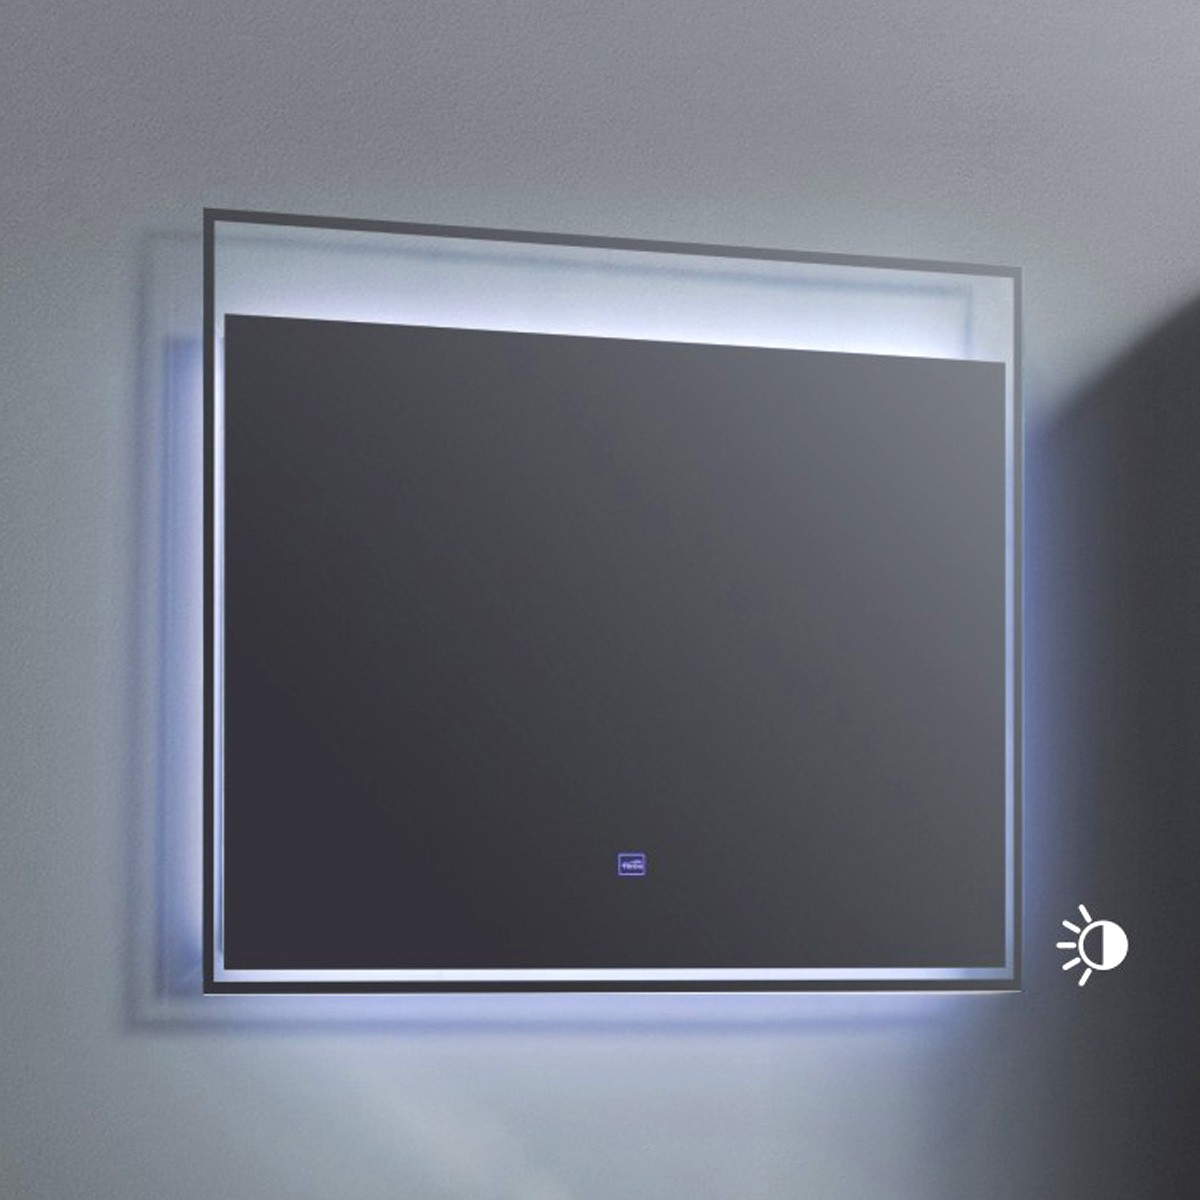 32 x 24 In. LED Mirror with Touch Button (ZRW8002-M)